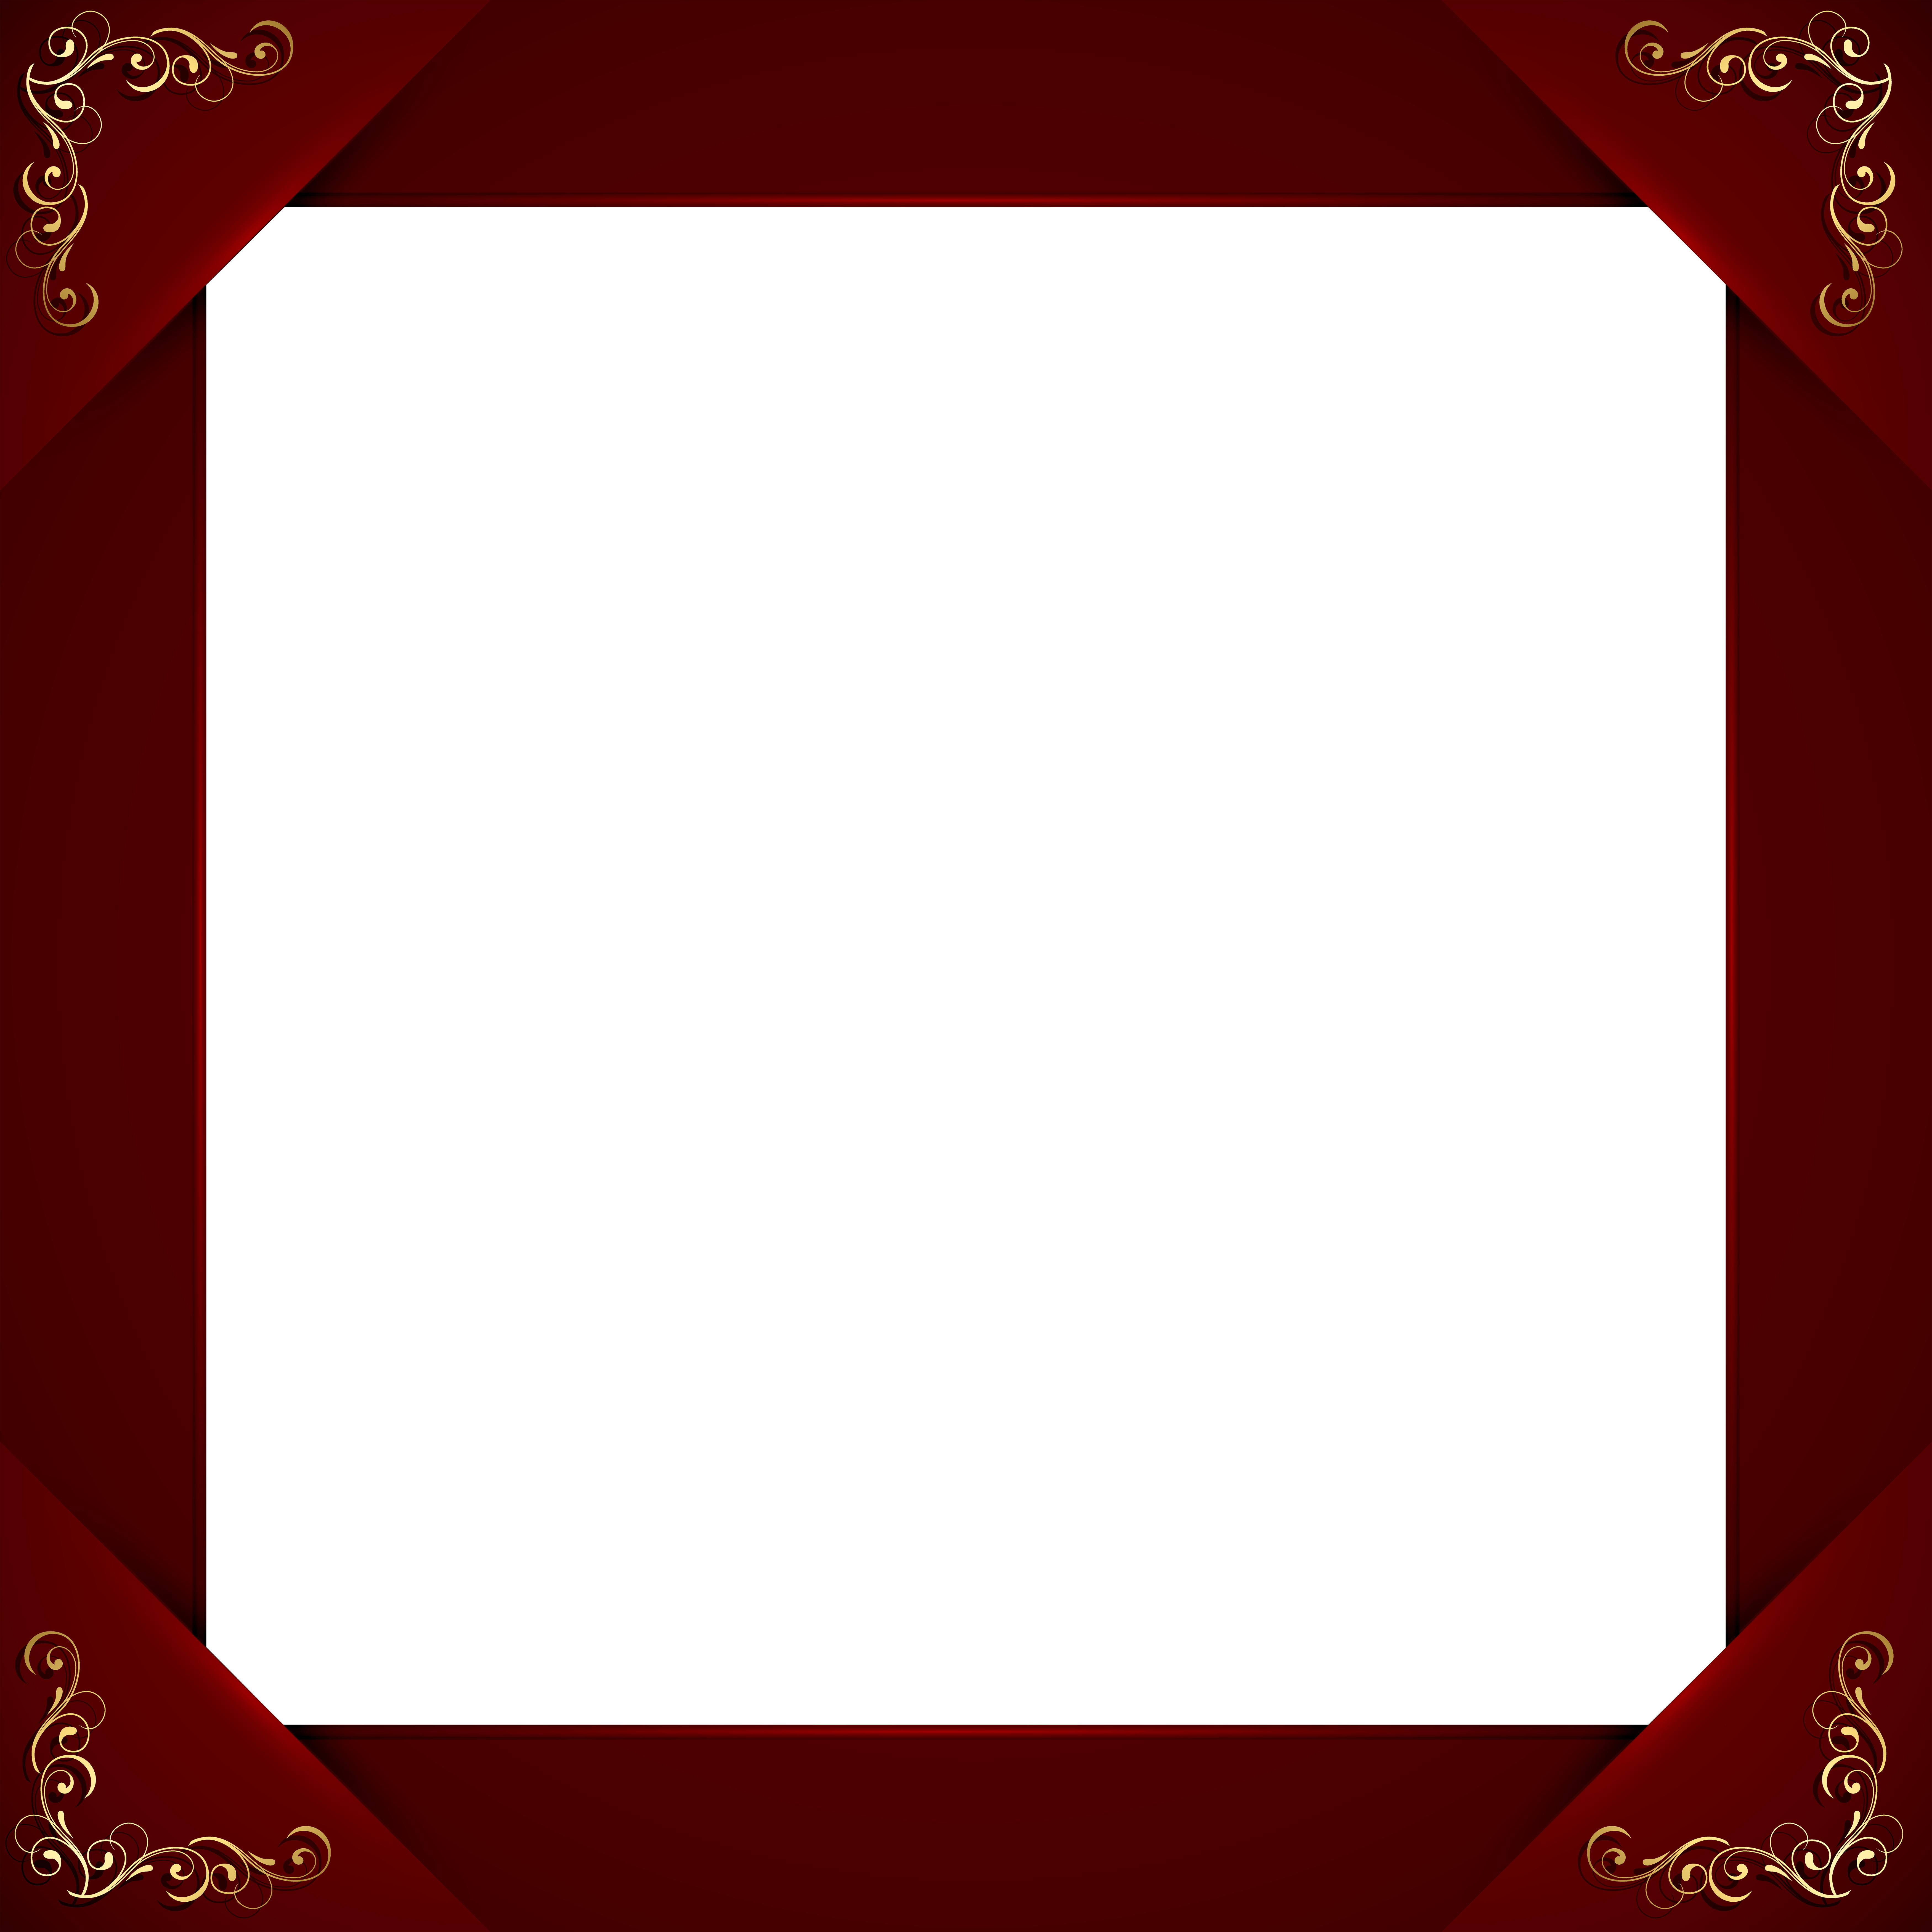 Transparent Elegant Red Frame Gallery Yopriceville High Quality Images And Transparent Png Free Clipart Red Frame Elegant Frame Gallery Frame